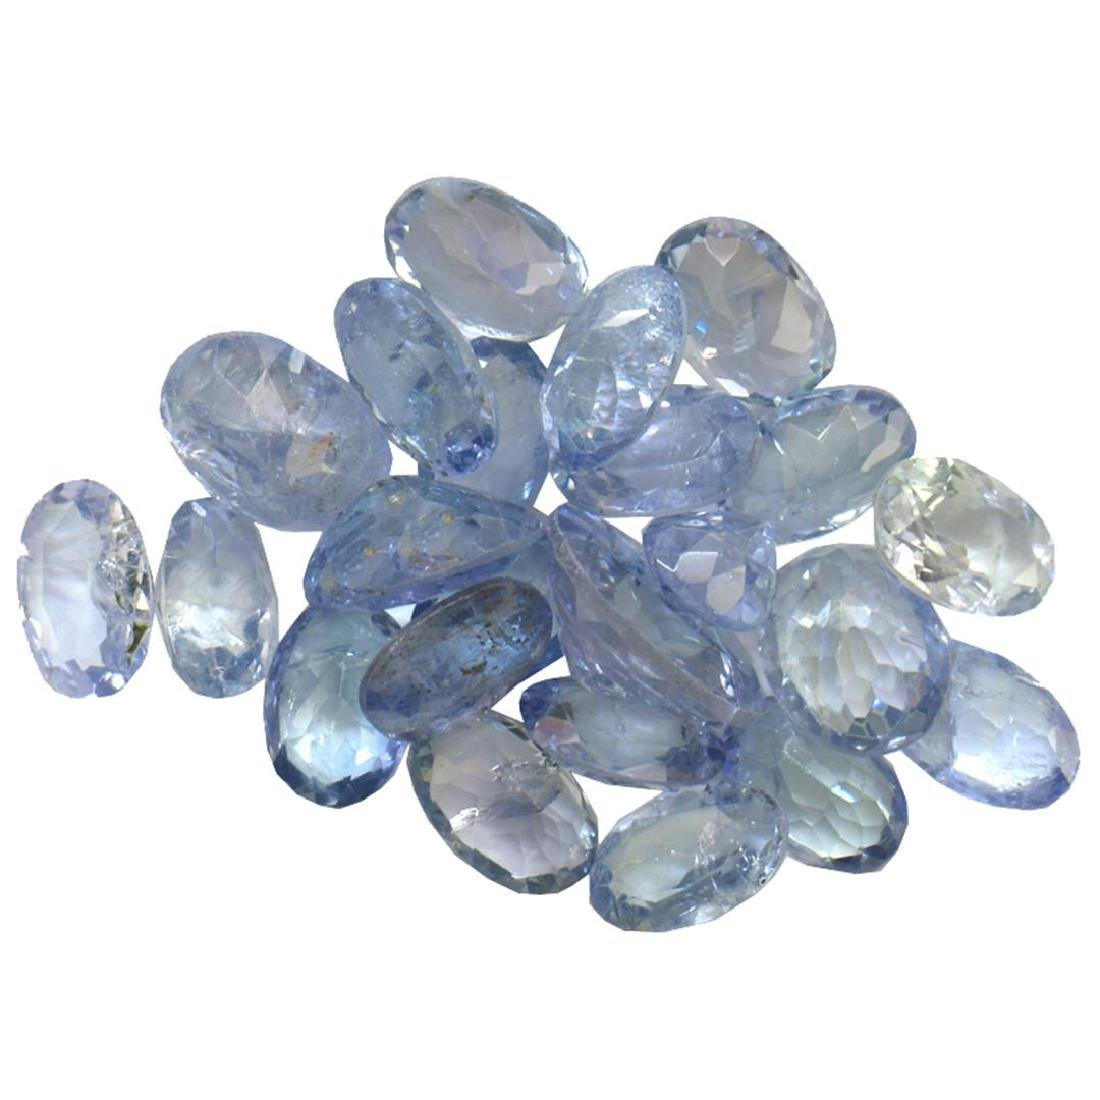 12.47 ctw Oval Mixed Tanzanite Parcel